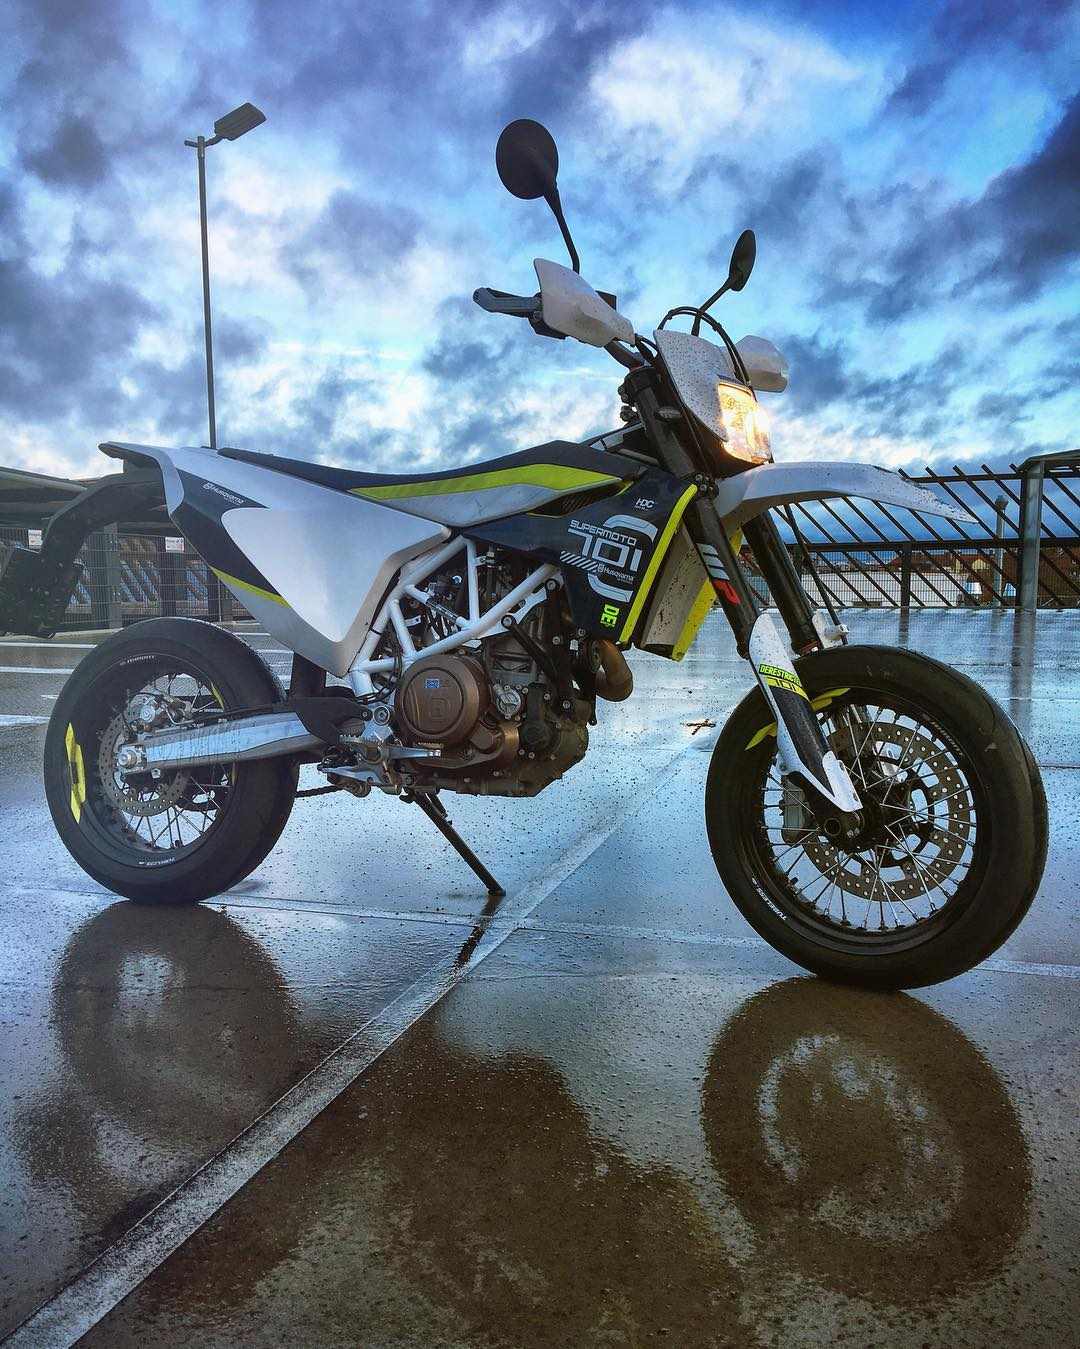 Snow melted, back on the bike! #husqvarna #701 #supermoto #moto